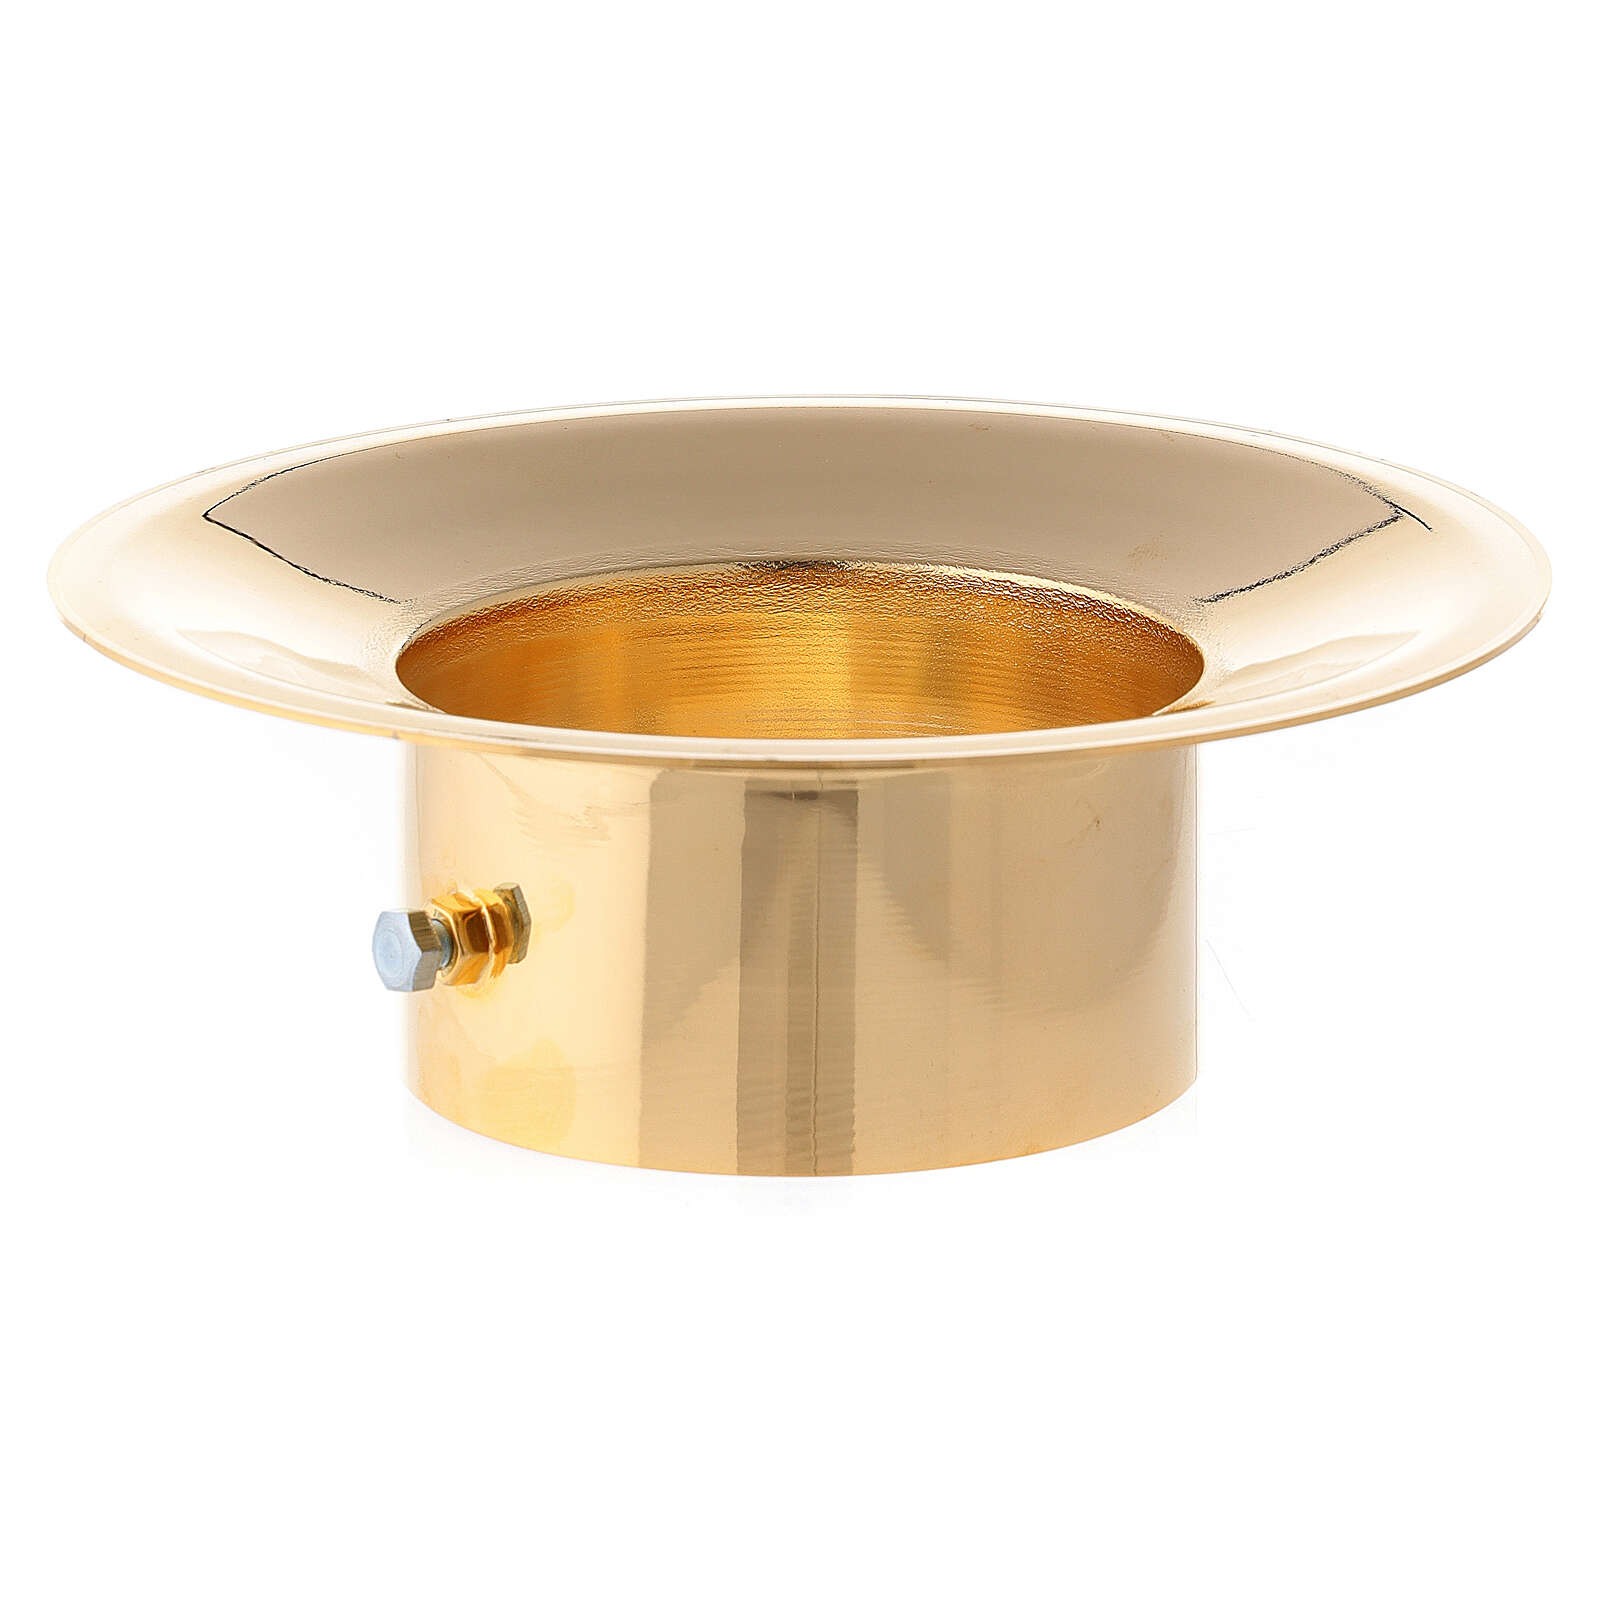 Wax collector in polished gold plated brass for Paschal candle 3 in diameter 3